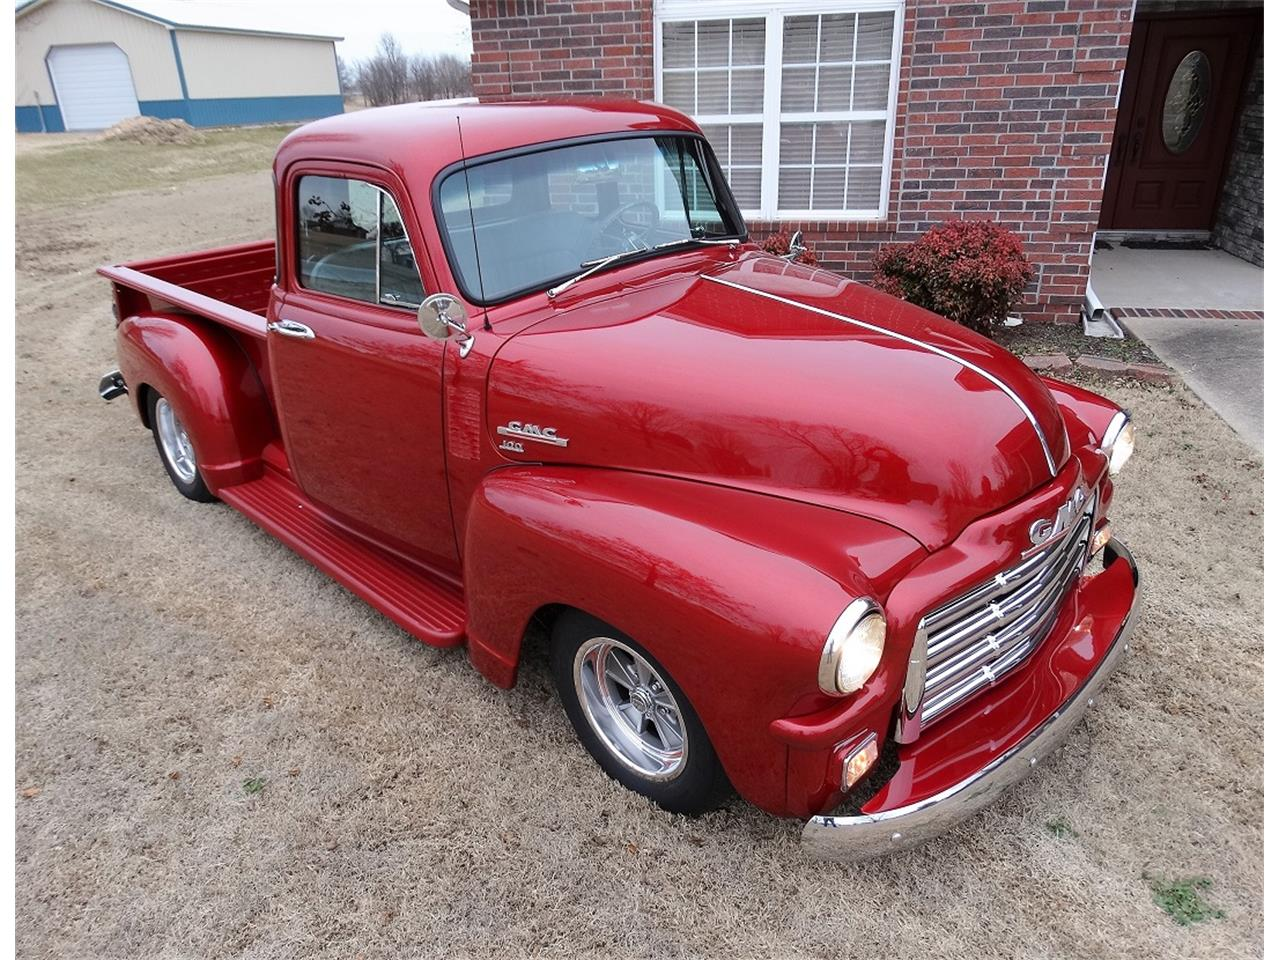 Large Picture of '54 GMC Pickup located in Arkansas - $54,900.00 Offered by a Private Seller - N8MG